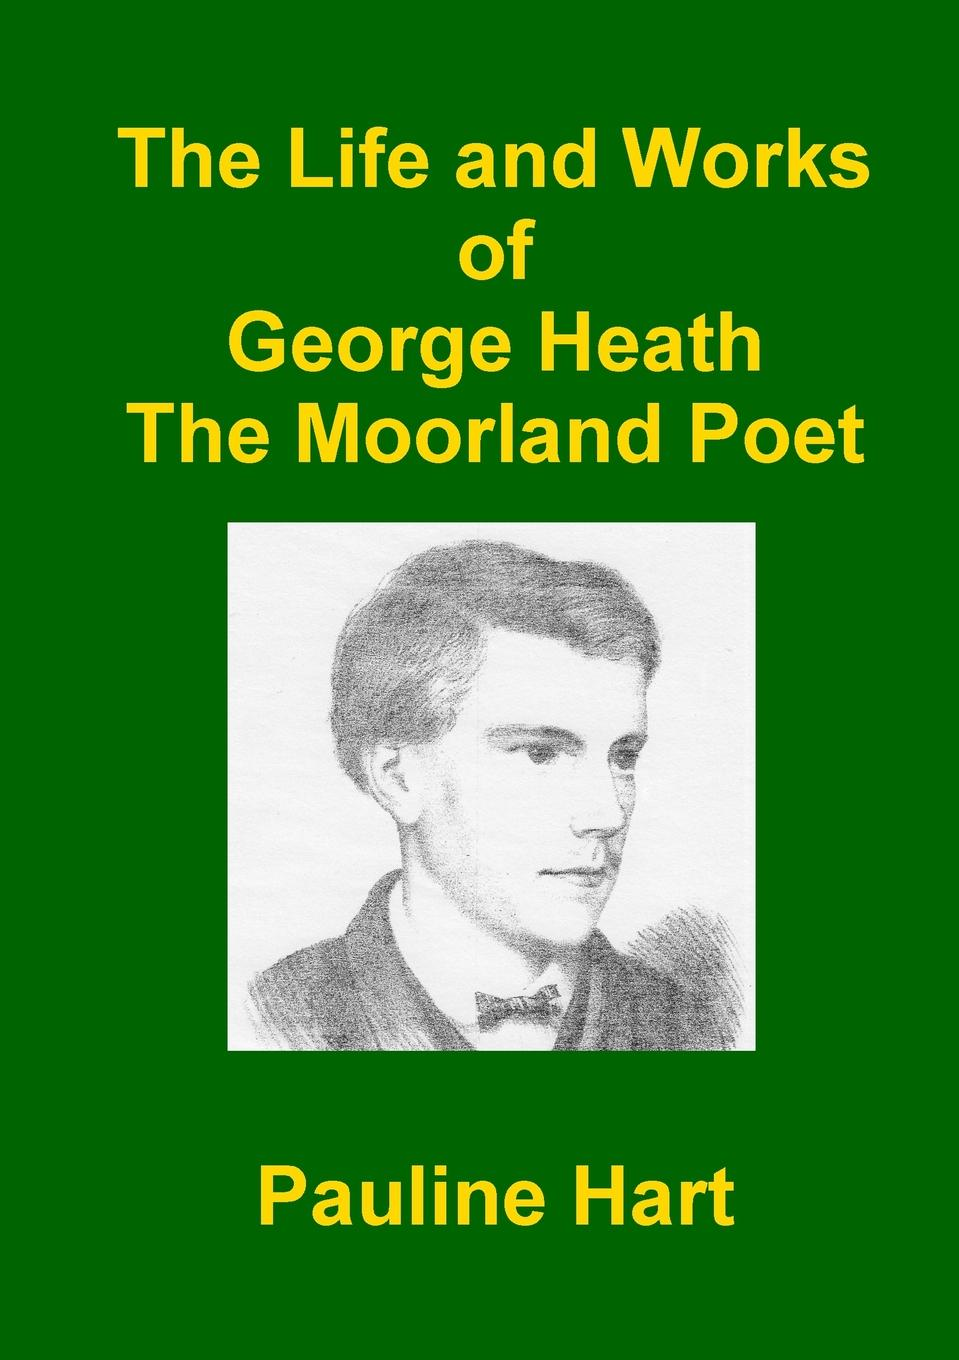 Pauline Hart The Life and Works of George Heath matthew e nordin musings of the northern poet poems of love and faith